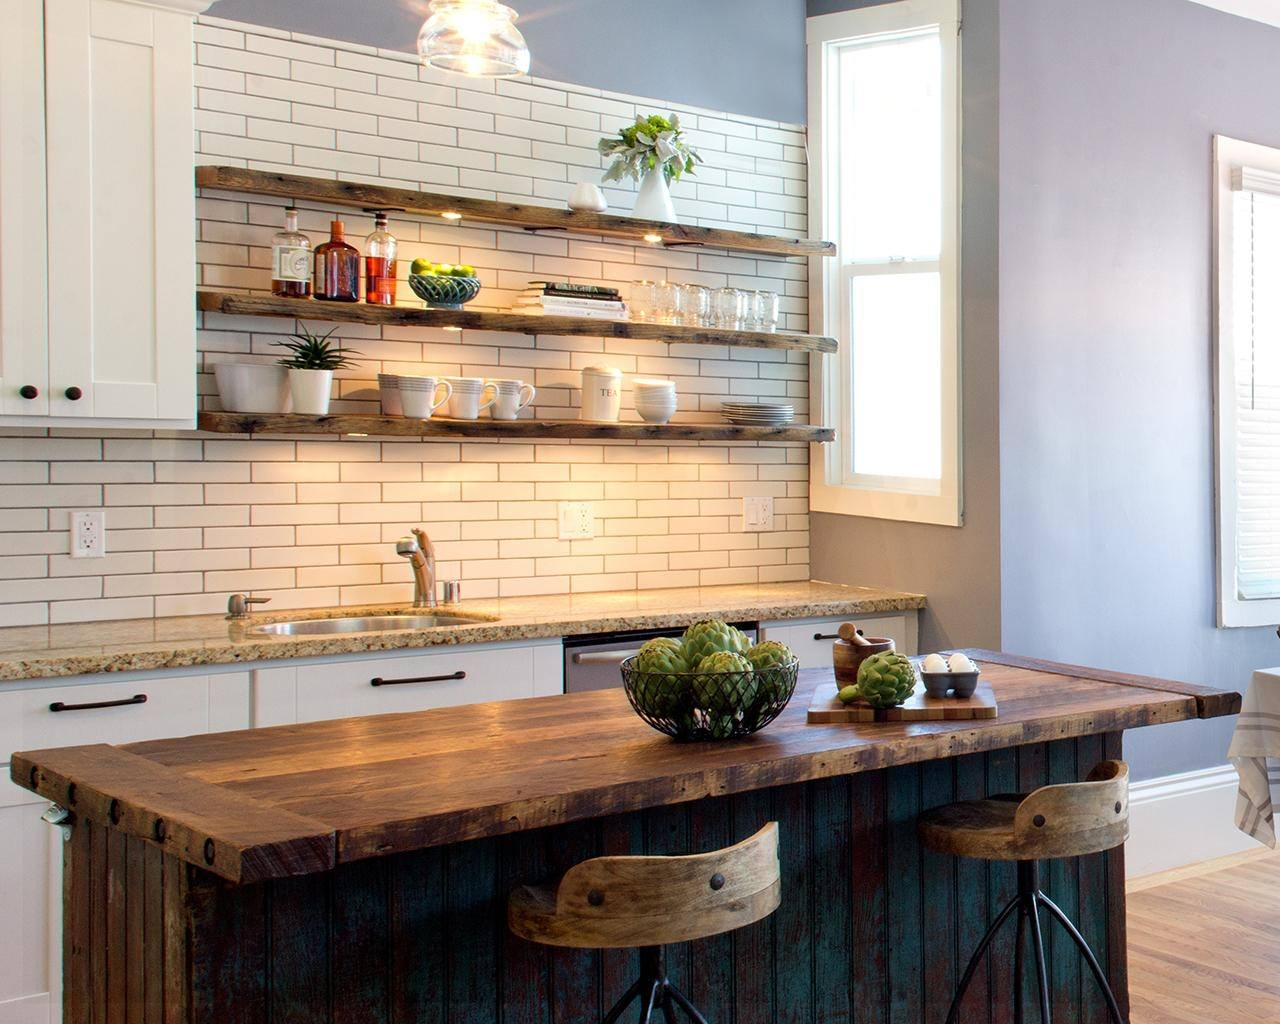 Trendy Display 50 Kitchen Islands With Open Shelving: 10 Open Shelving Kitchen Specially Picked Styles